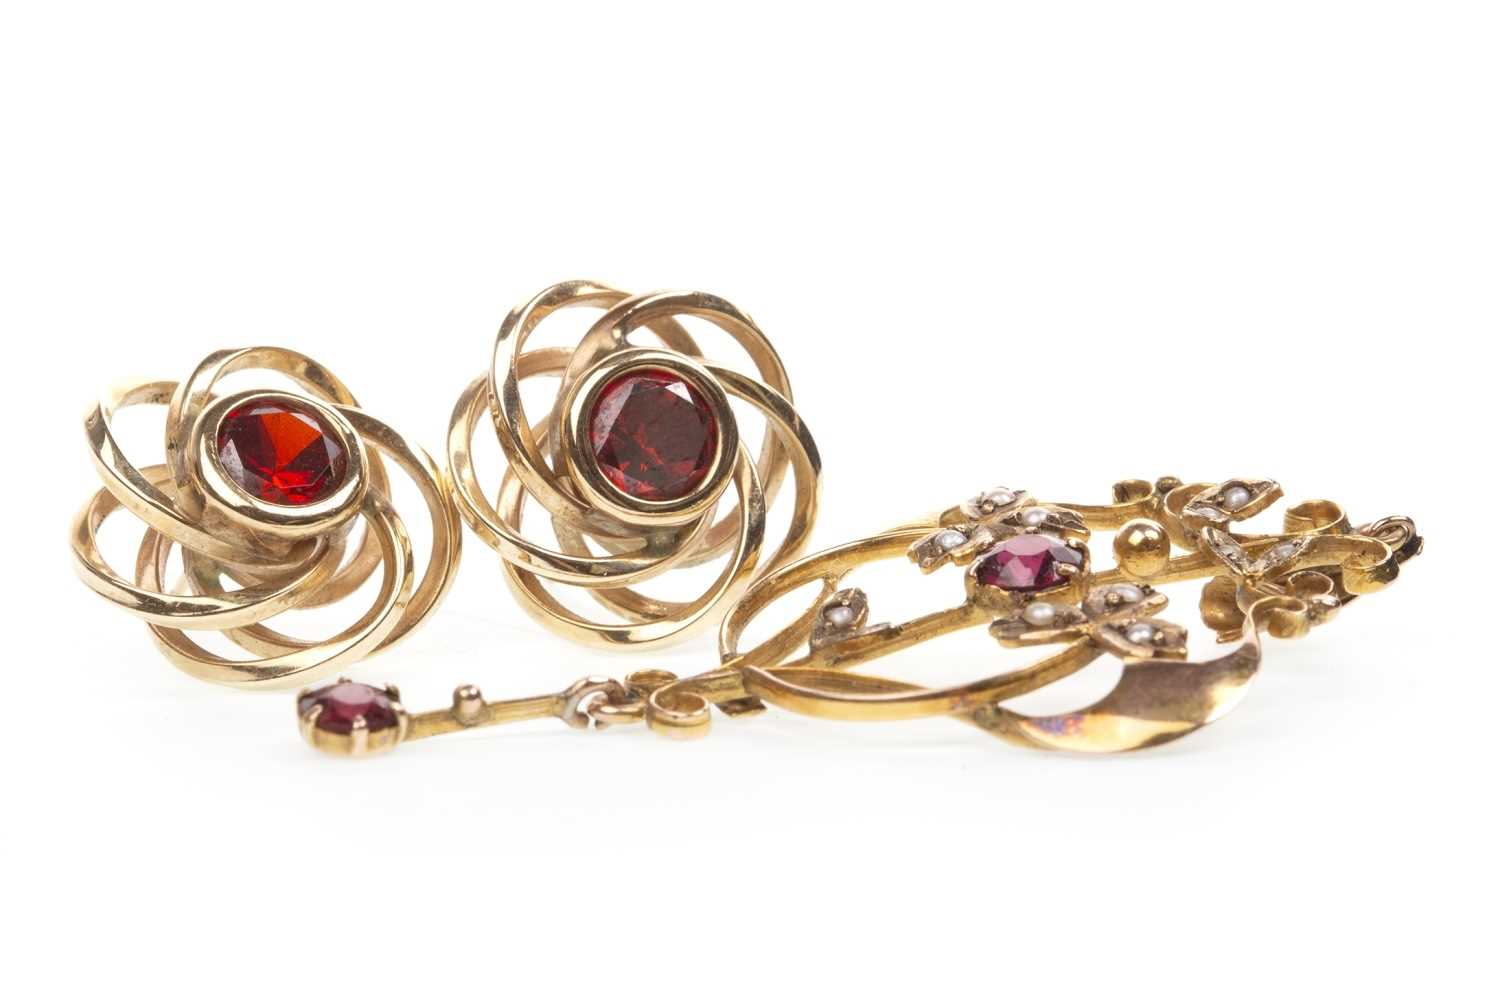 Lot 36-A PAIR OF RED GEM SET EARRINGS AND A PENDANT